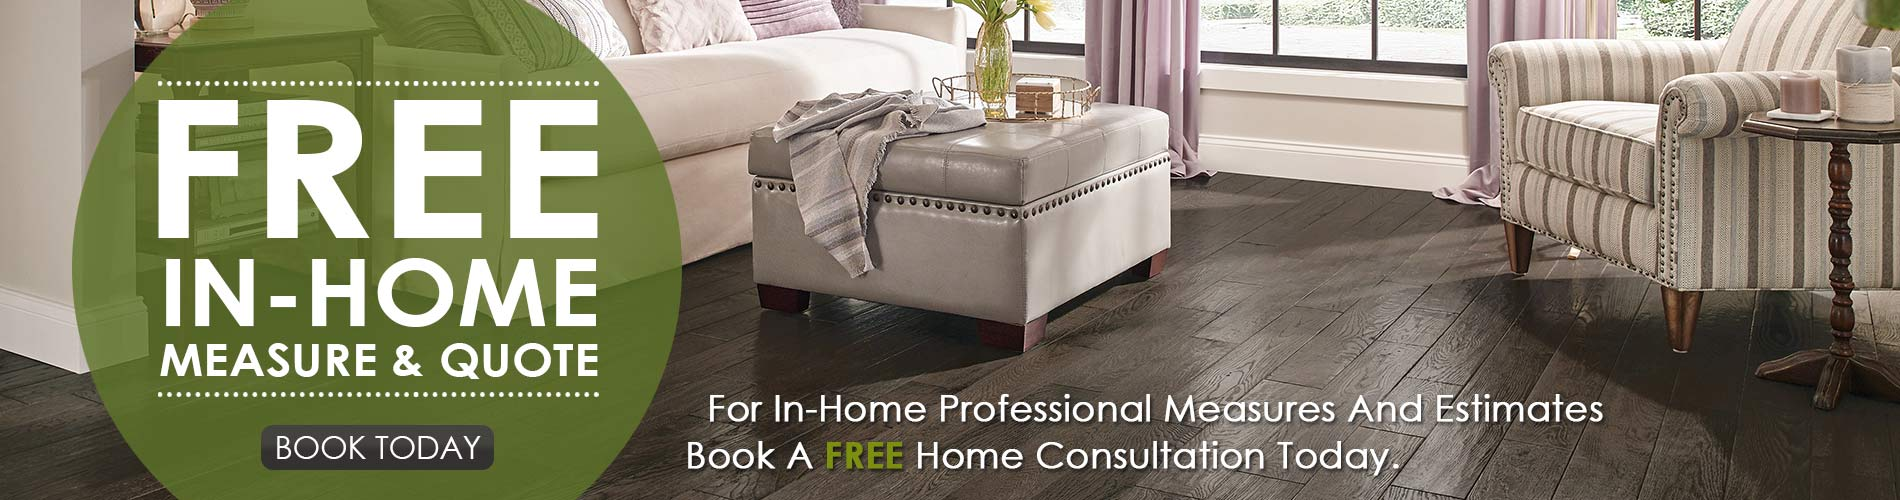 Free In-Home Measure & Quote | For In-Home Professional Measures And Estimates Book A FREE Home Consultation Today. | BOOK TODAY